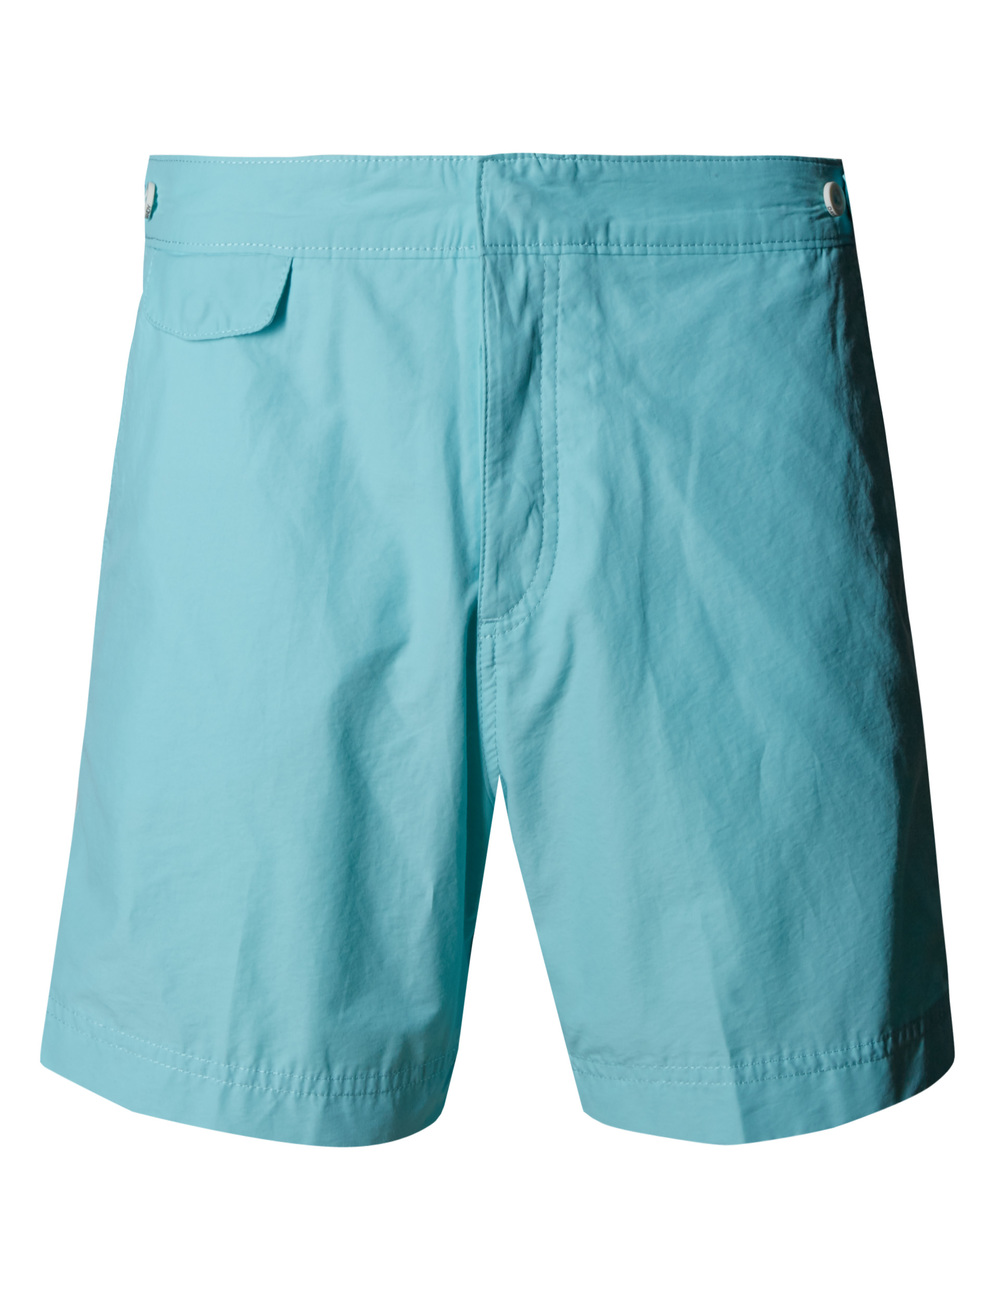 David Gandy for Autograph Tailored Fit Quick Dry Swim Shorts T28 7907A -ú29.50 Aqumarine Mid Length.jpg